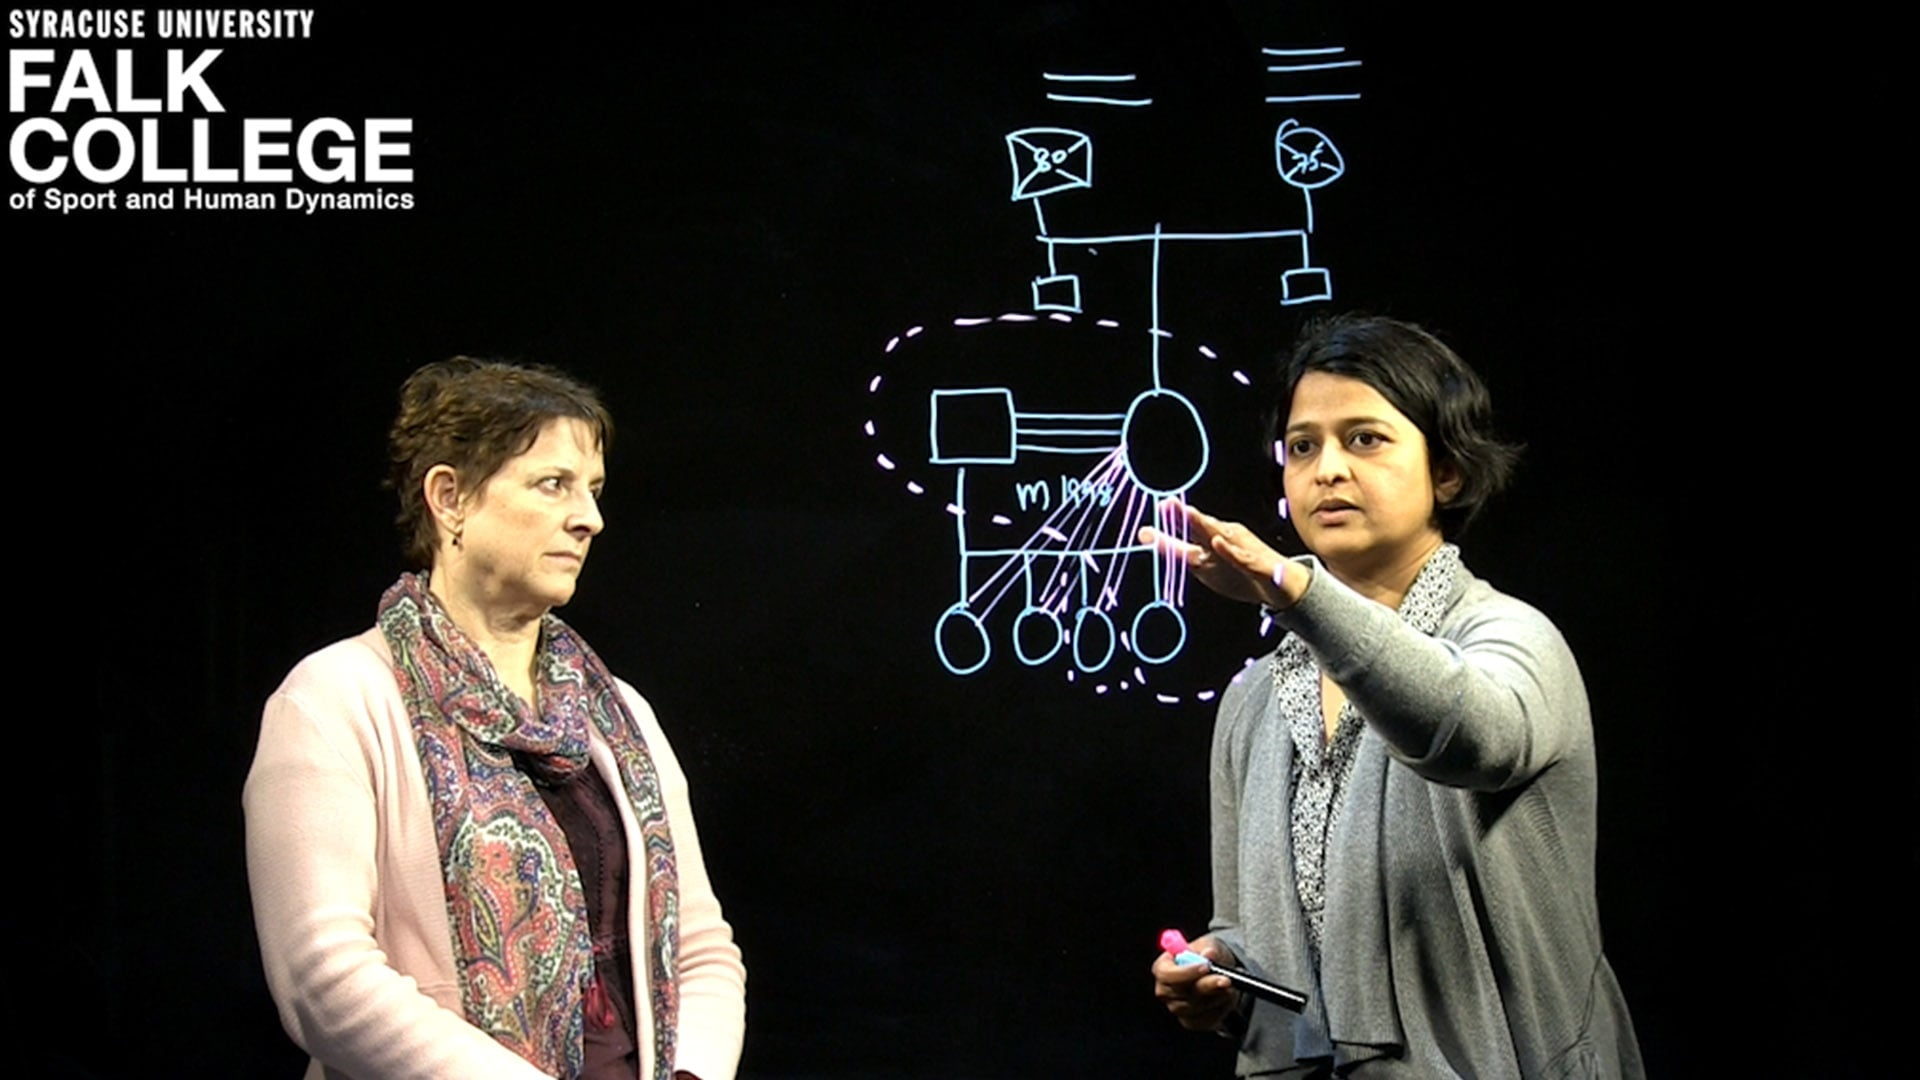 Two professors teaching on a light board